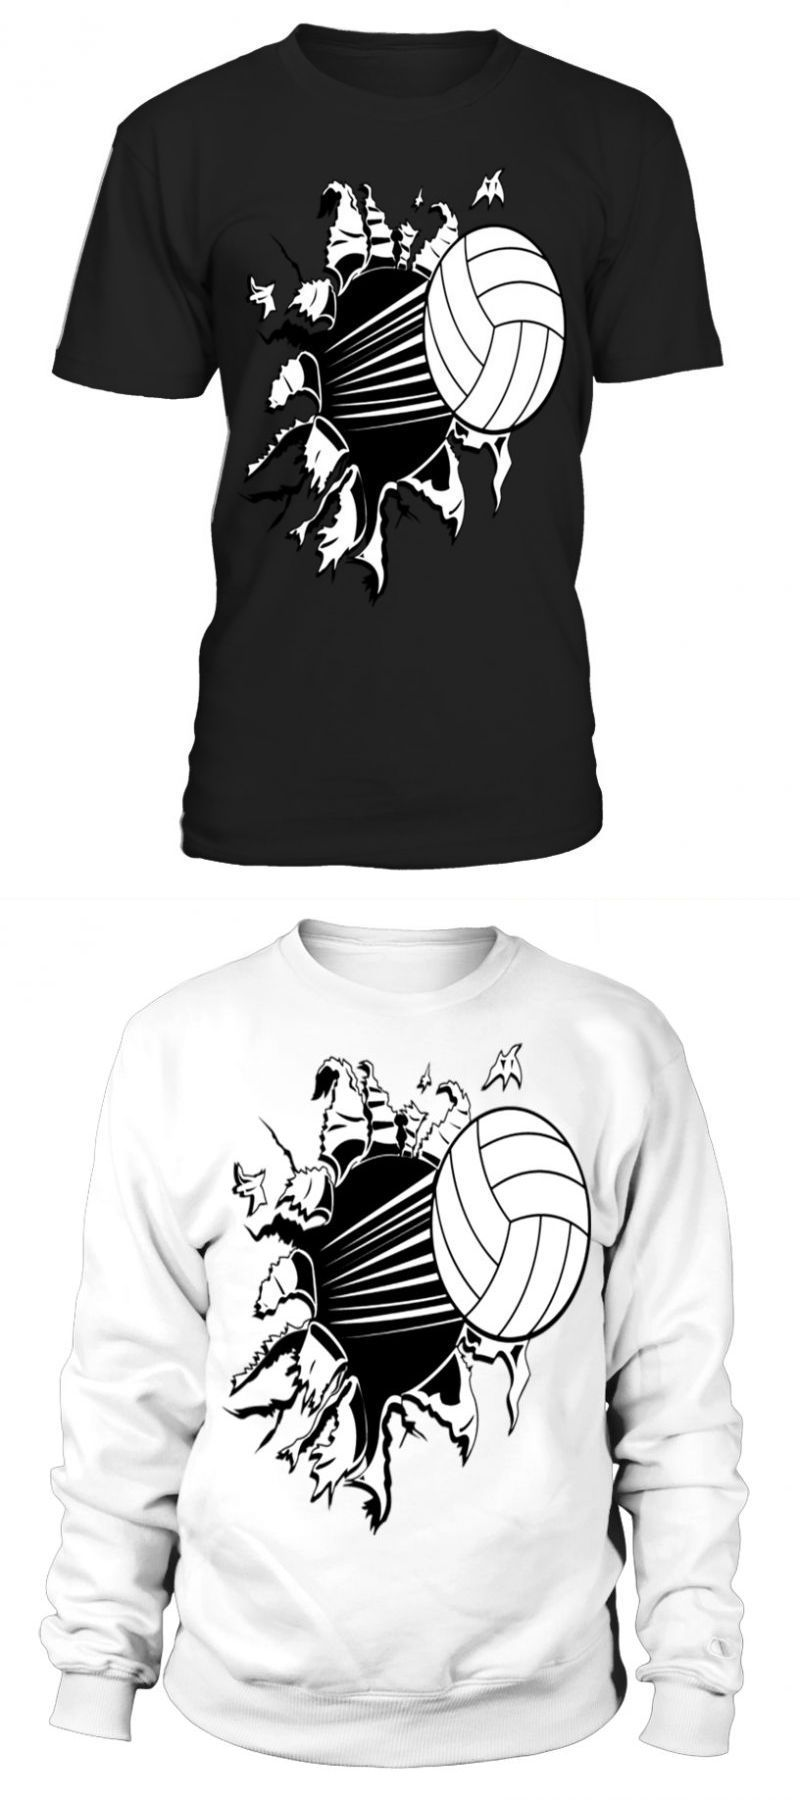 T Shirt Volleyball Designs Volleyball 2017 Volleyball T Shirt Amazon T Shirt Volleyball Designs 2017 Shirt Volleyball Designs Volleyball Tshirts Shirts